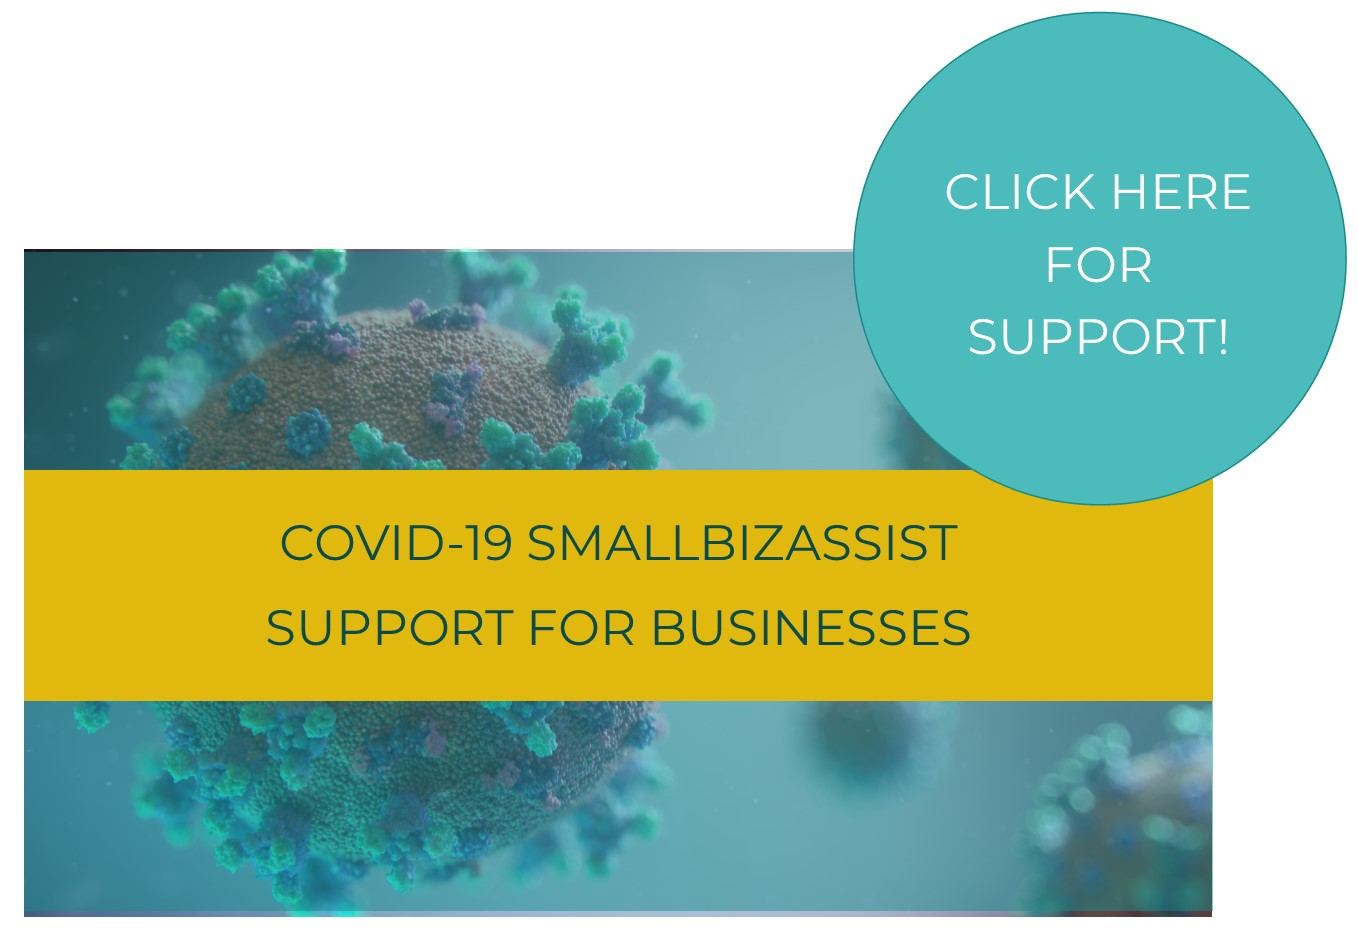 Click here for Covid-19 support